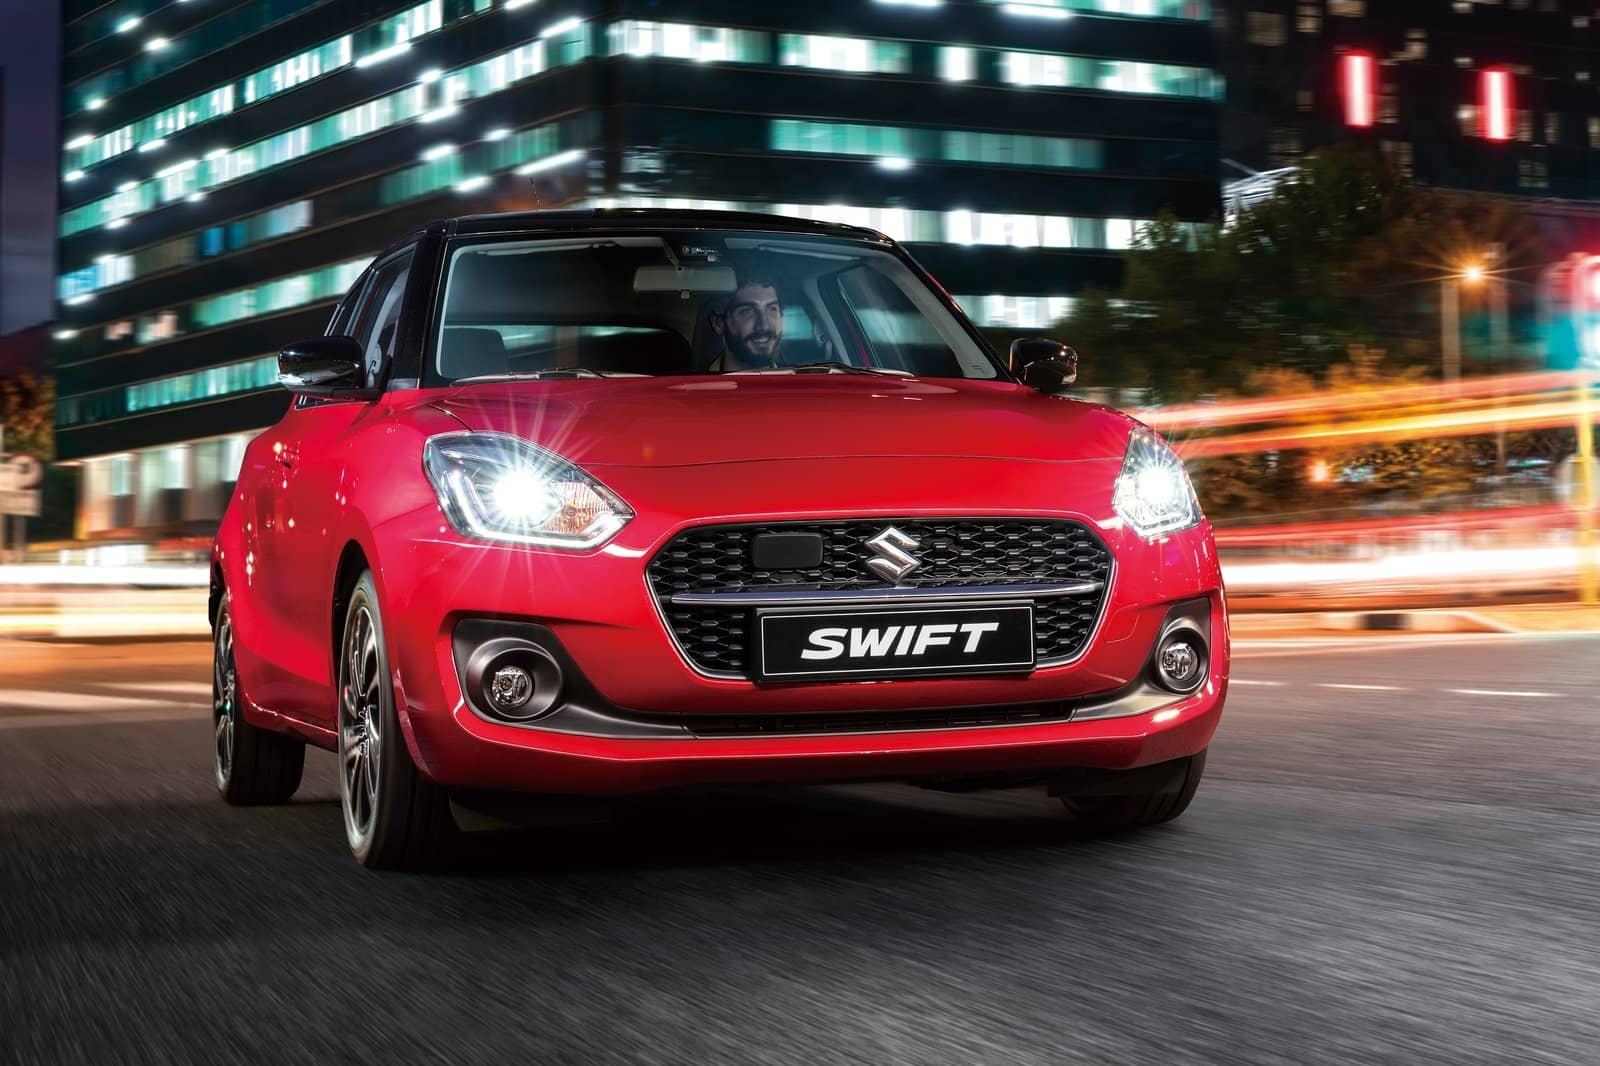 Suzuki-Swift-2021-1600-03